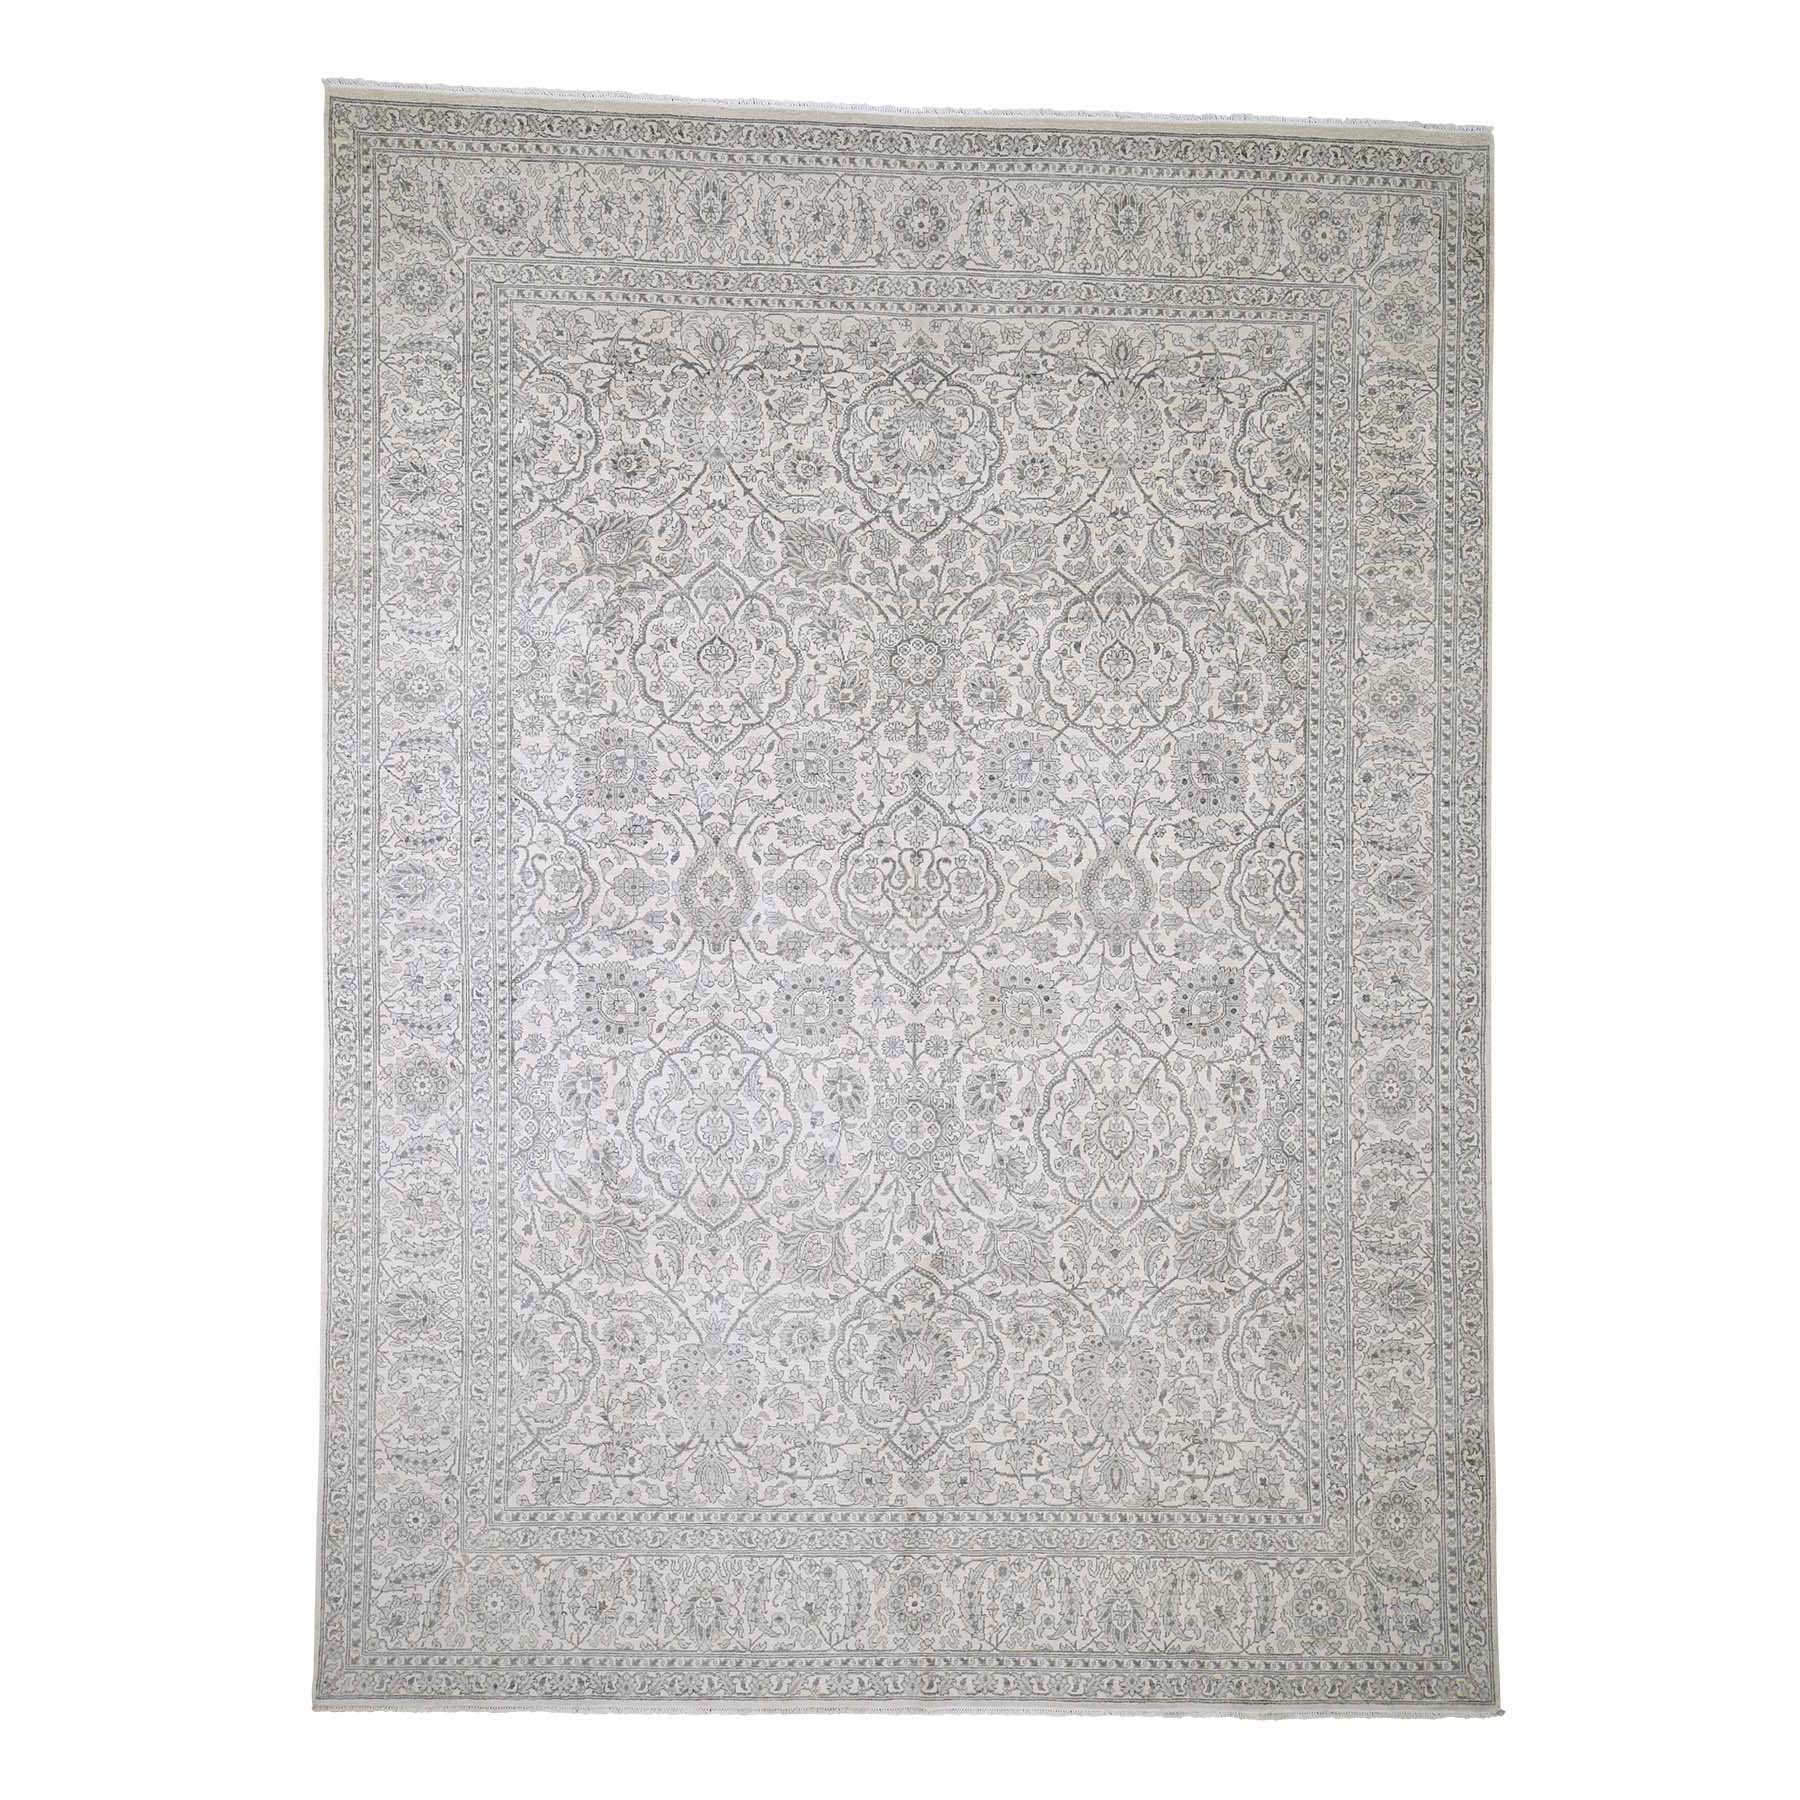 Real Silk Collection Hand Knotted Ivory Rug No: 190242